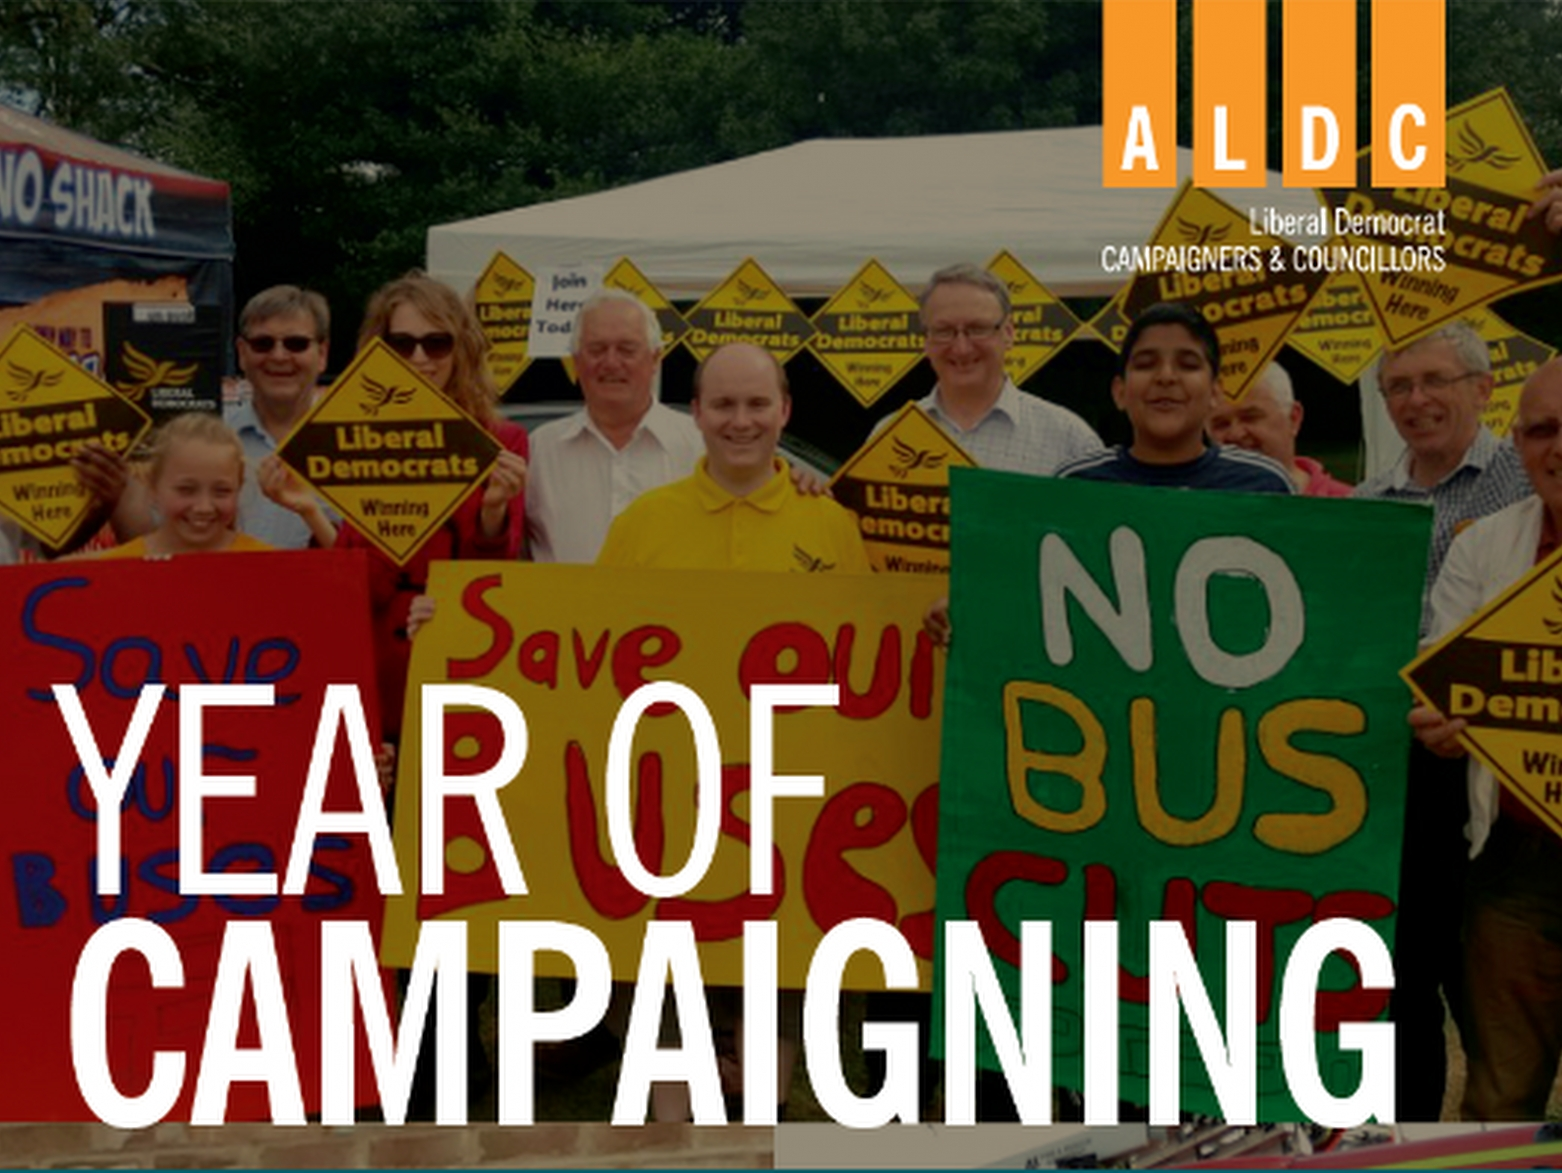 Year of campaigning – September